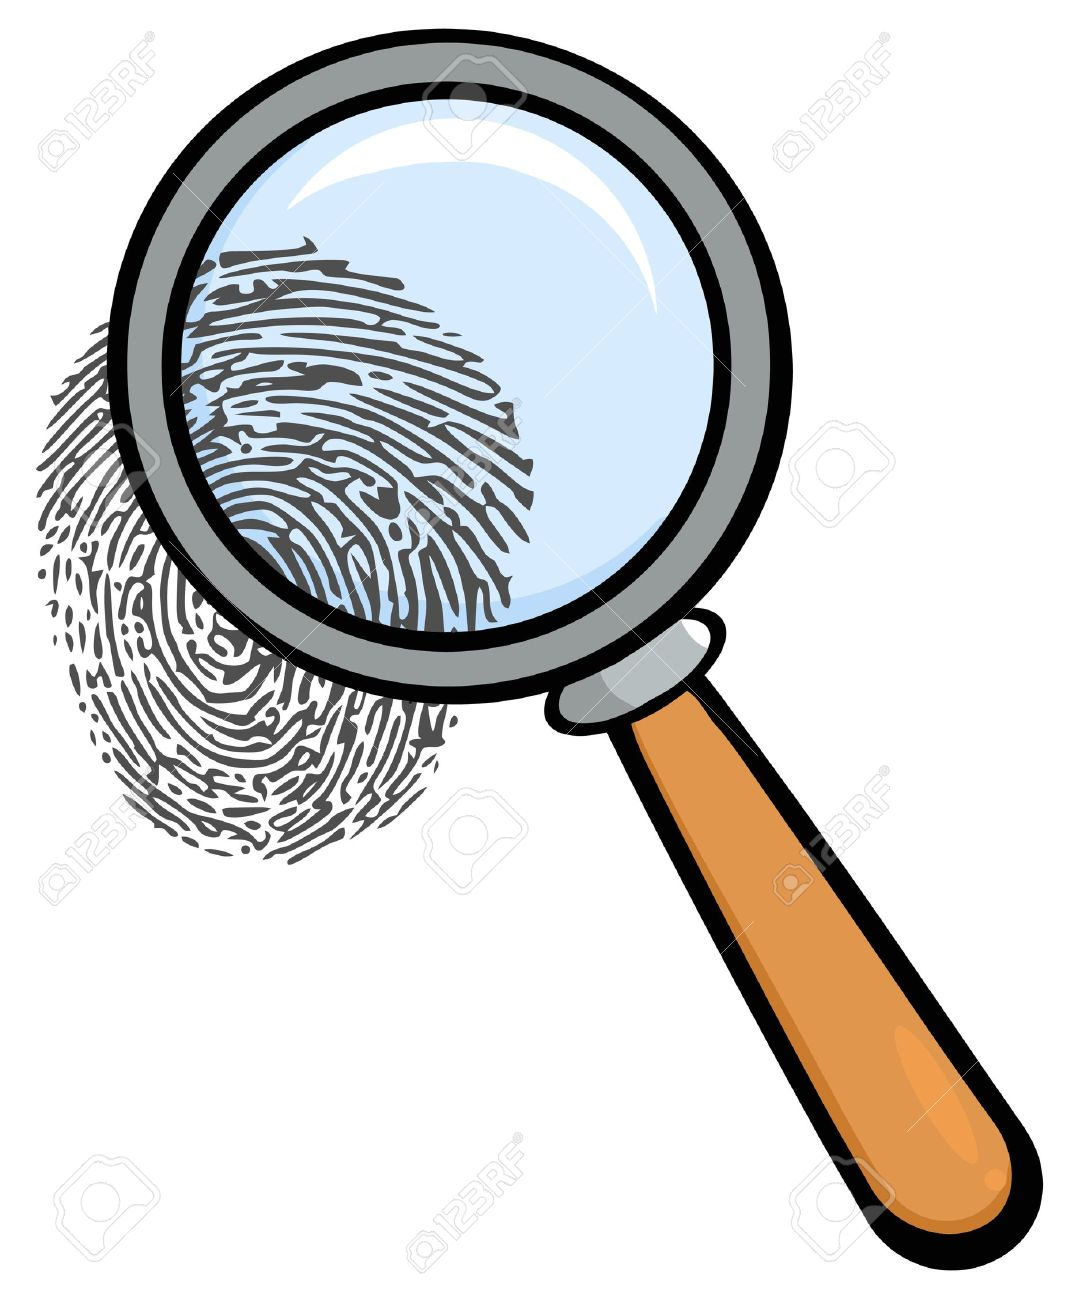 magnifying glass with fingerprint royalty free cliparts vectors rh 123rf com magnifying glass clipart free magnifying glass clipart transparent background